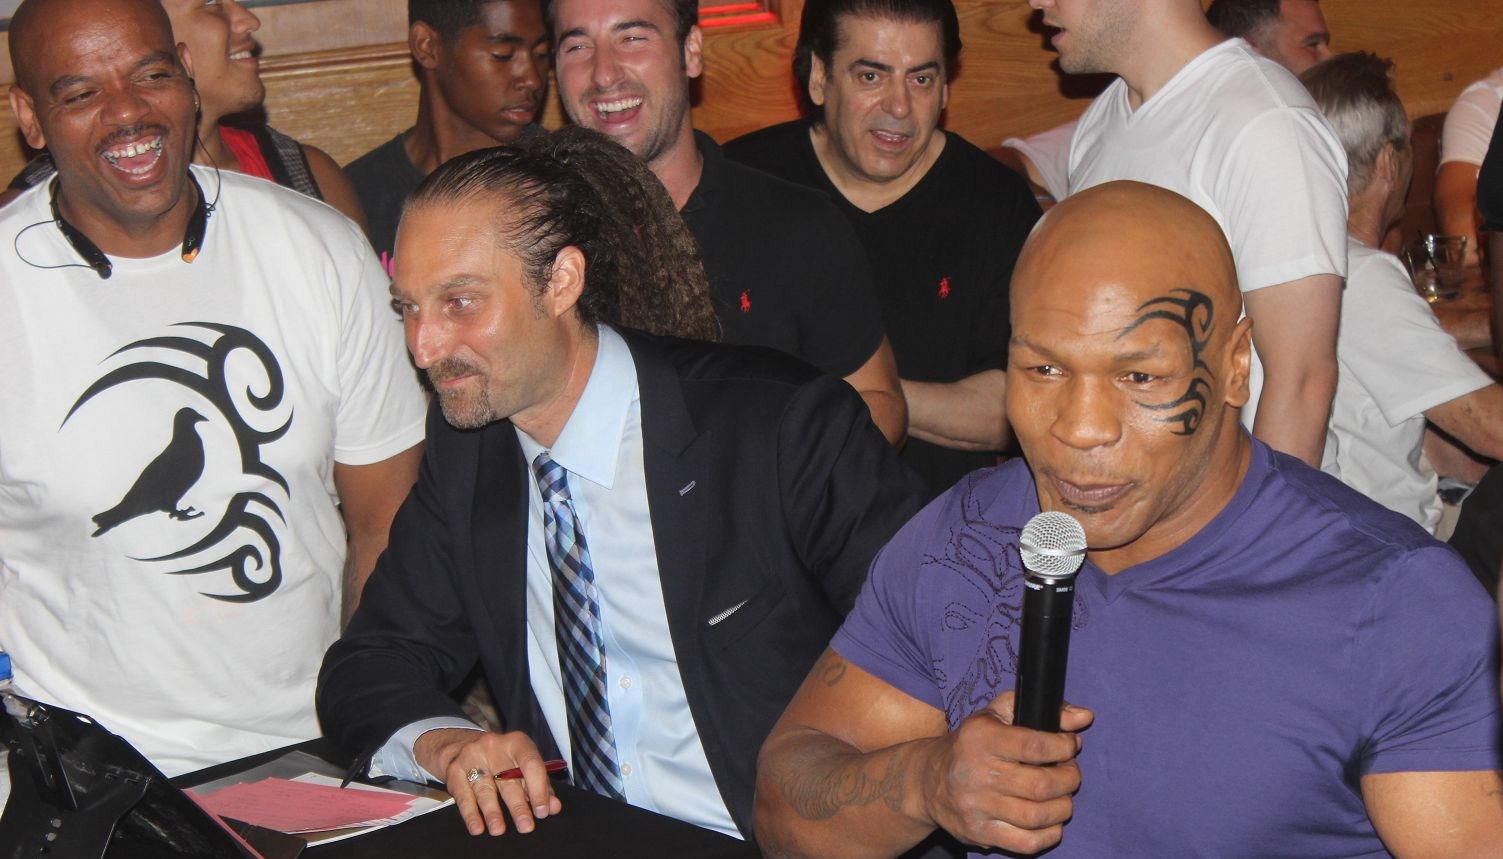 Mike Tyson at The Bite Fight Launch Party at Bounce Sporting Club